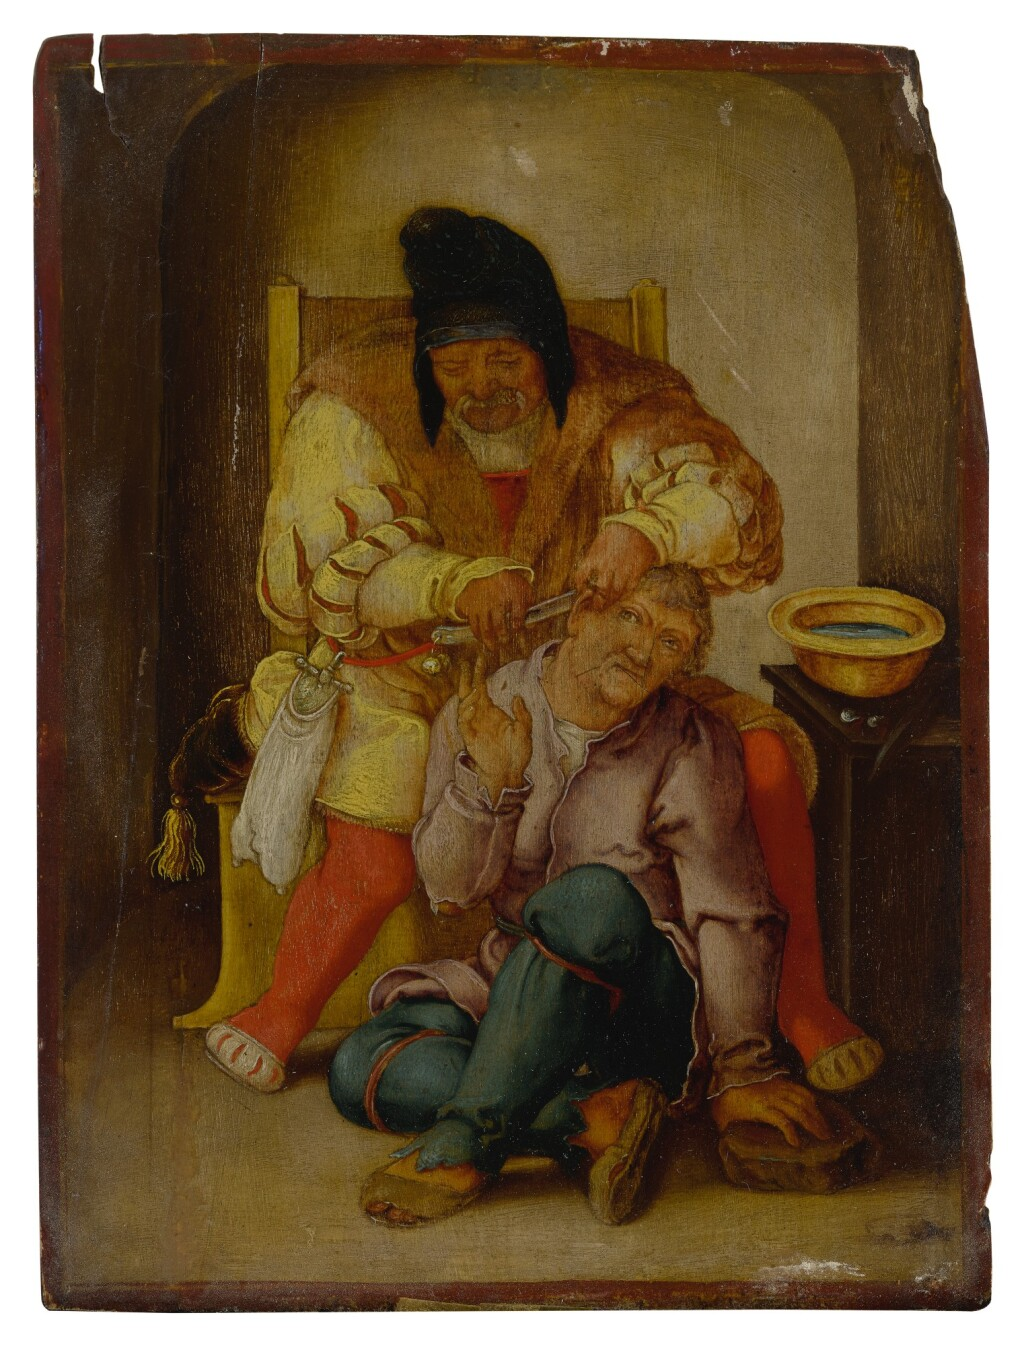 17TH CENTURY FOLLOWER OF LUCAS VAN LEYDEN   A SURGEON WITH HIS PATIENT